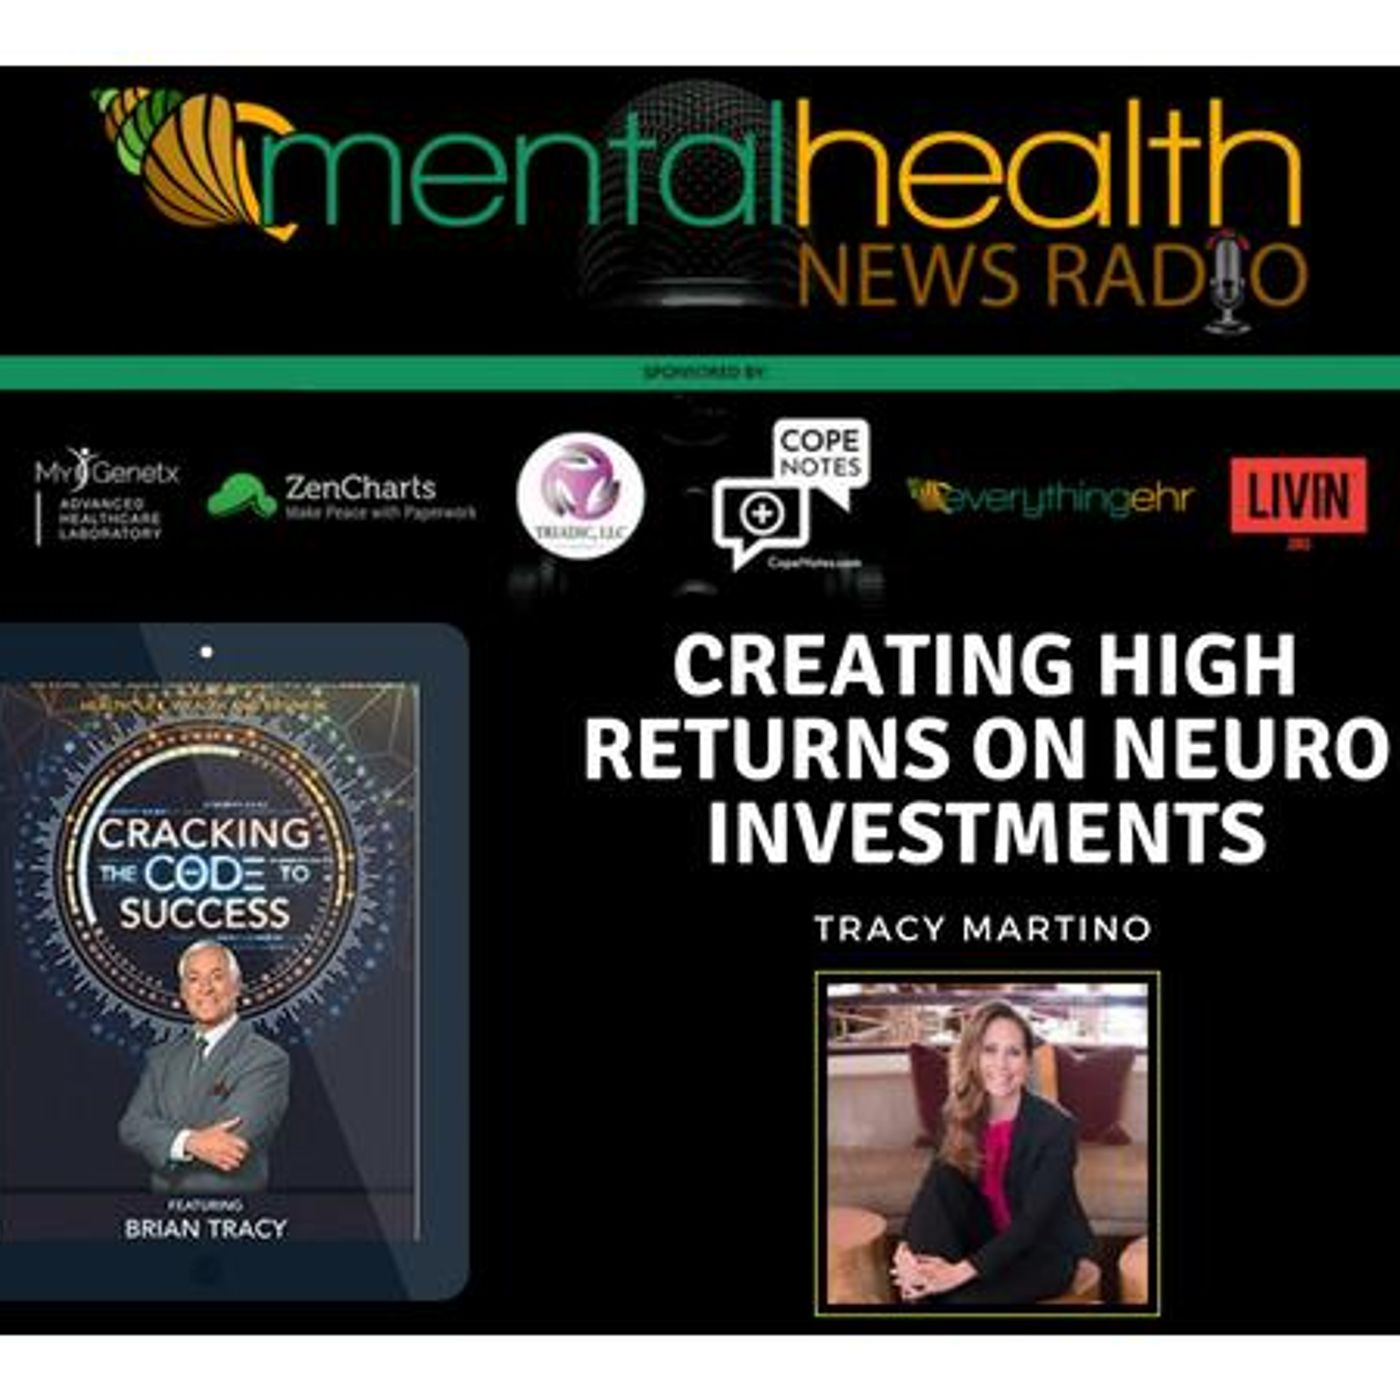 Mental Health News Radio - Creating High Returns on Neuro Investments with Tracy Martino